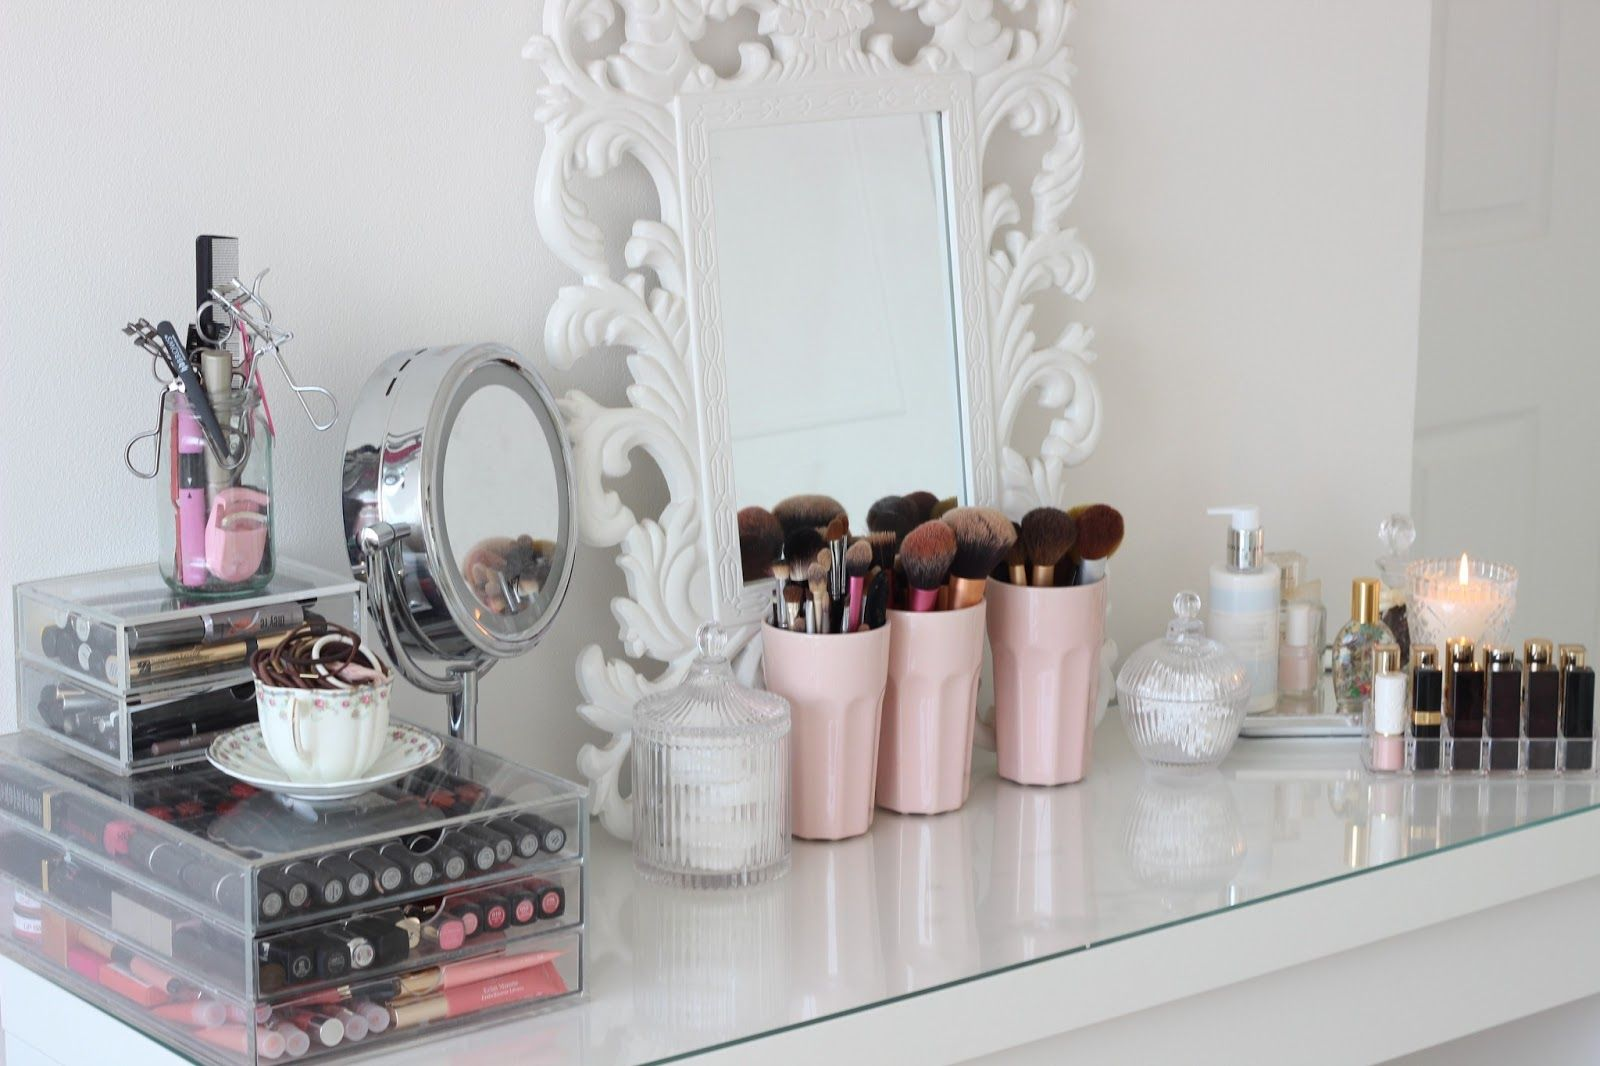 Dressing table designs with full length mirror for girls - Top 25 Ideas About Dressing Table Prettiness On Pinterest Lipstick Holder Quartos And Jewelry Storage